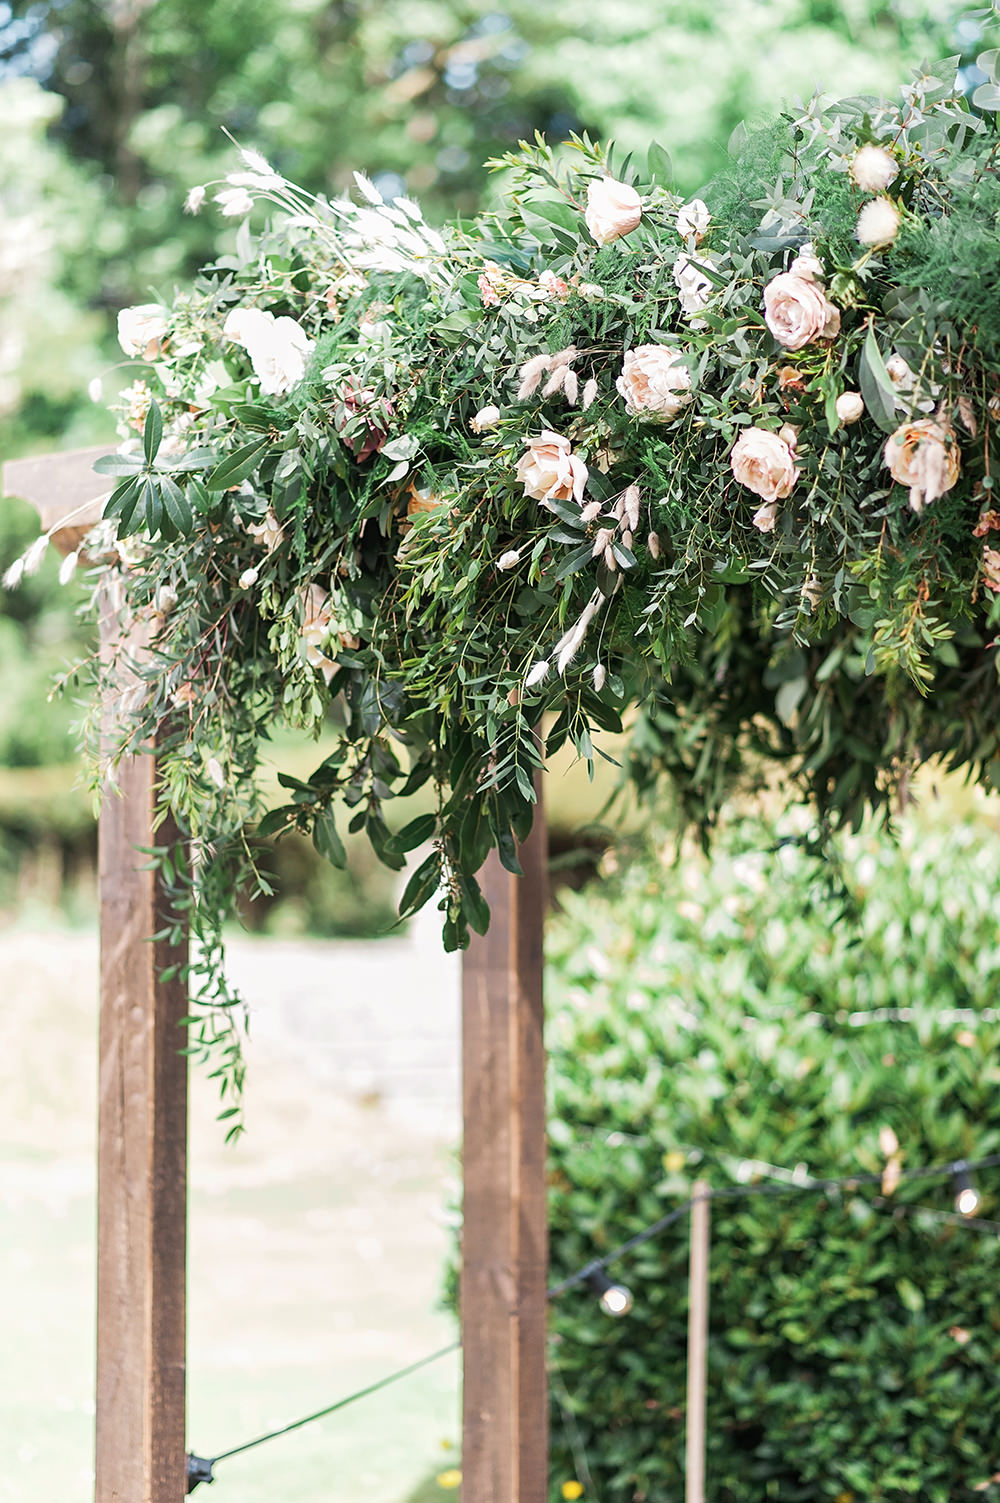 Foliage Pink Rose Archway Backdrop Edmondsham House Wedding Darima Frampton Photography